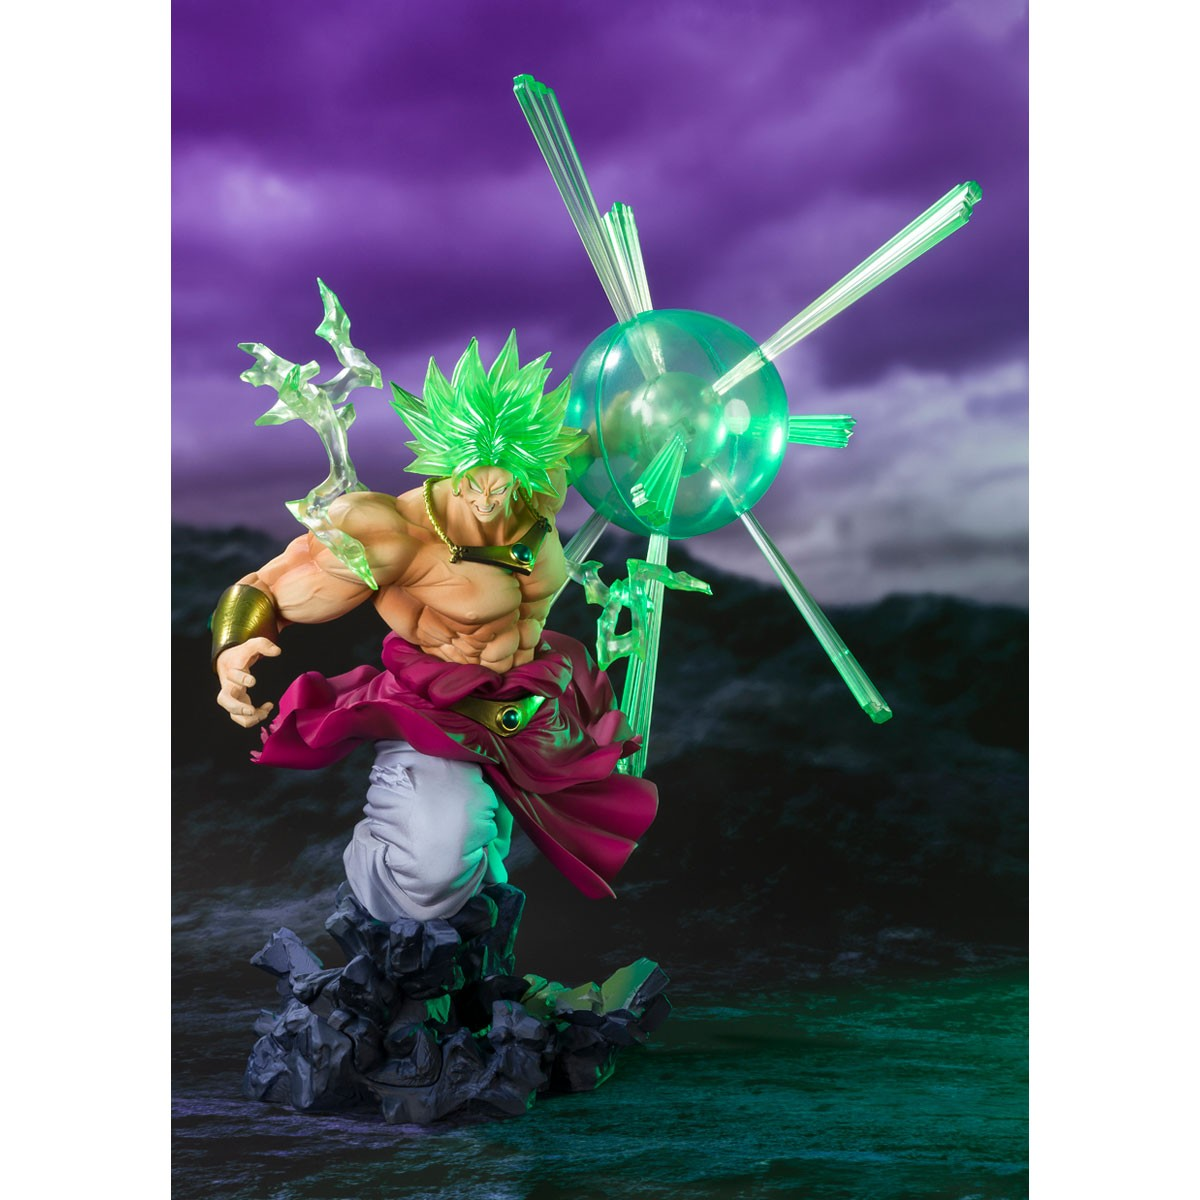 Bandai Figuarts Zero Dragon Ball Z Broly The Legendary Super Saiyan Event Exclus